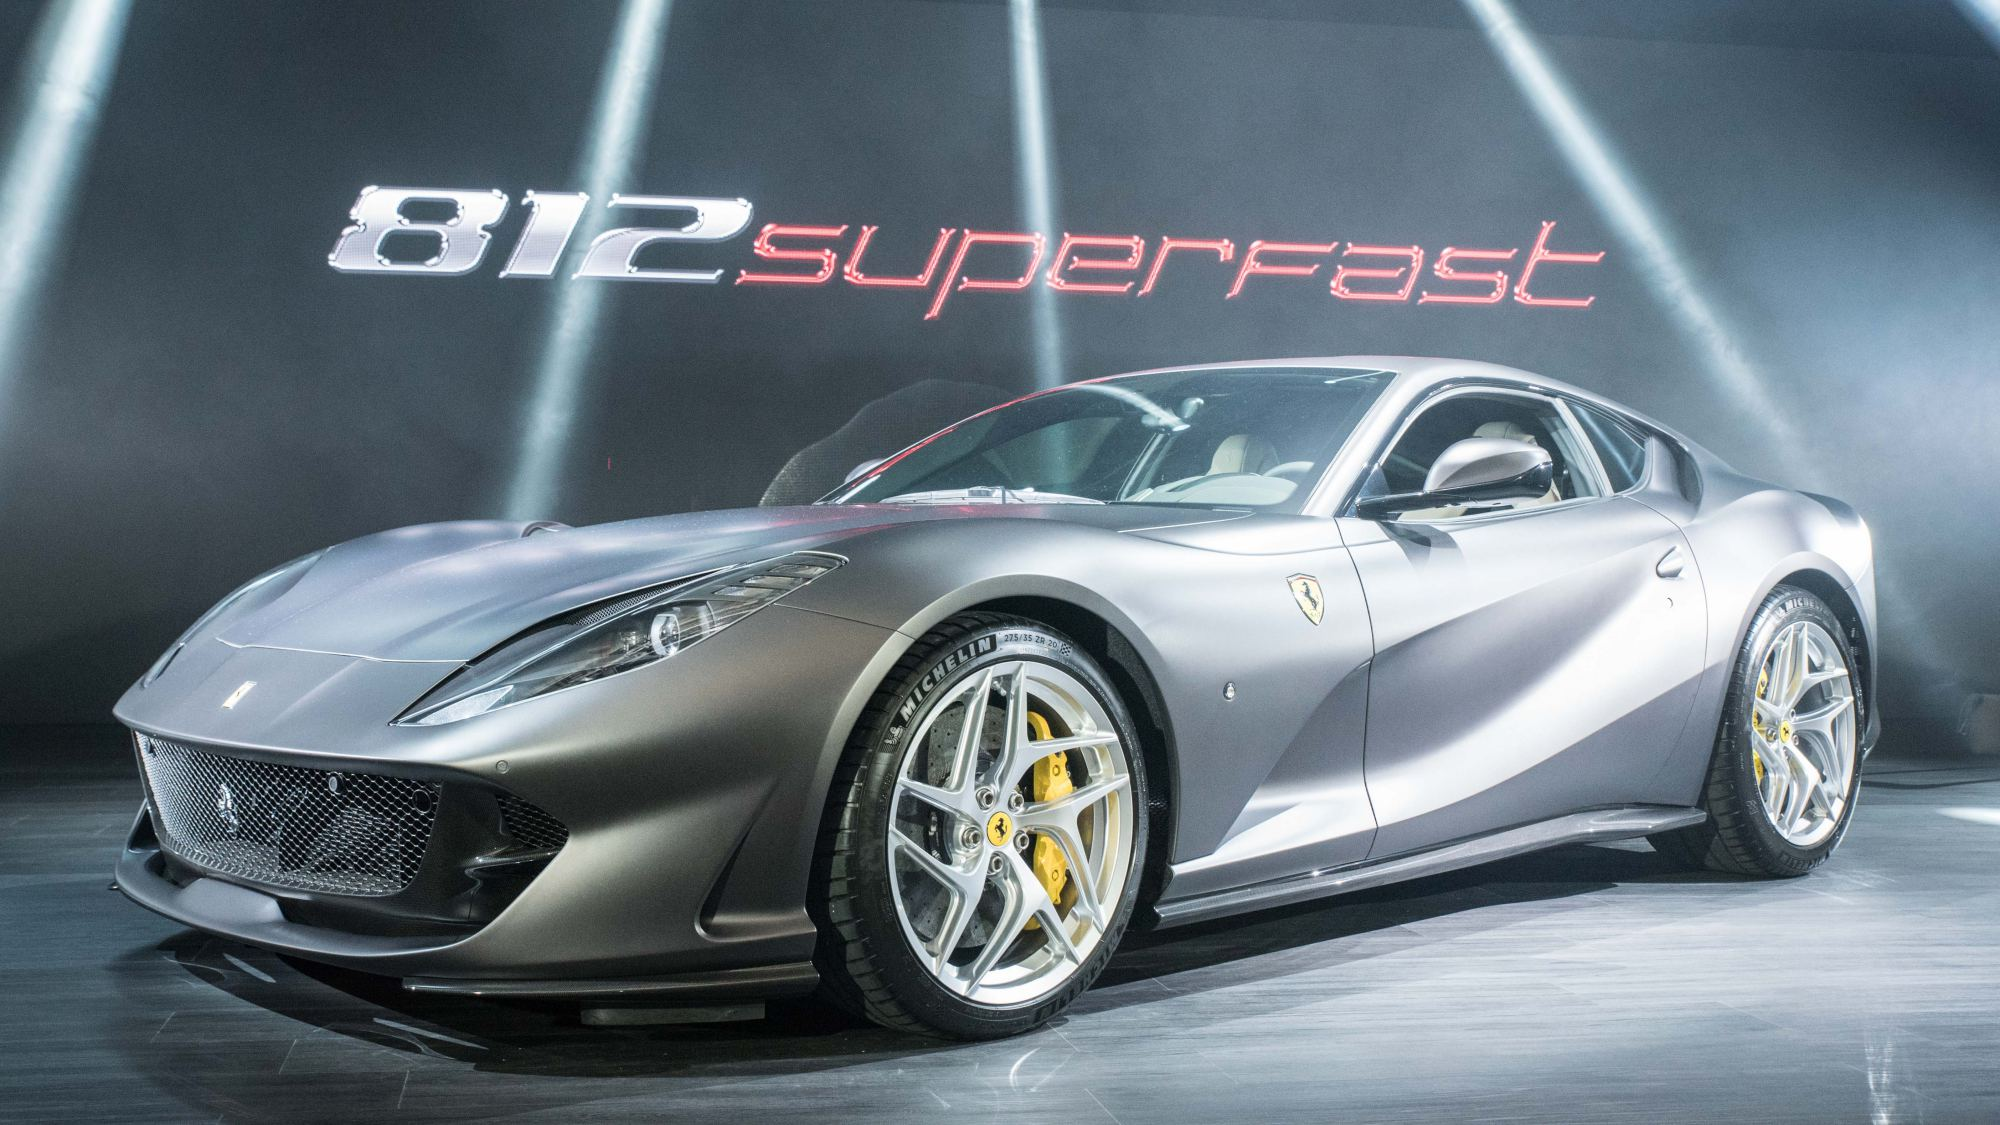 News - Ferrari 812 Superfast Touches Down In Melbourne